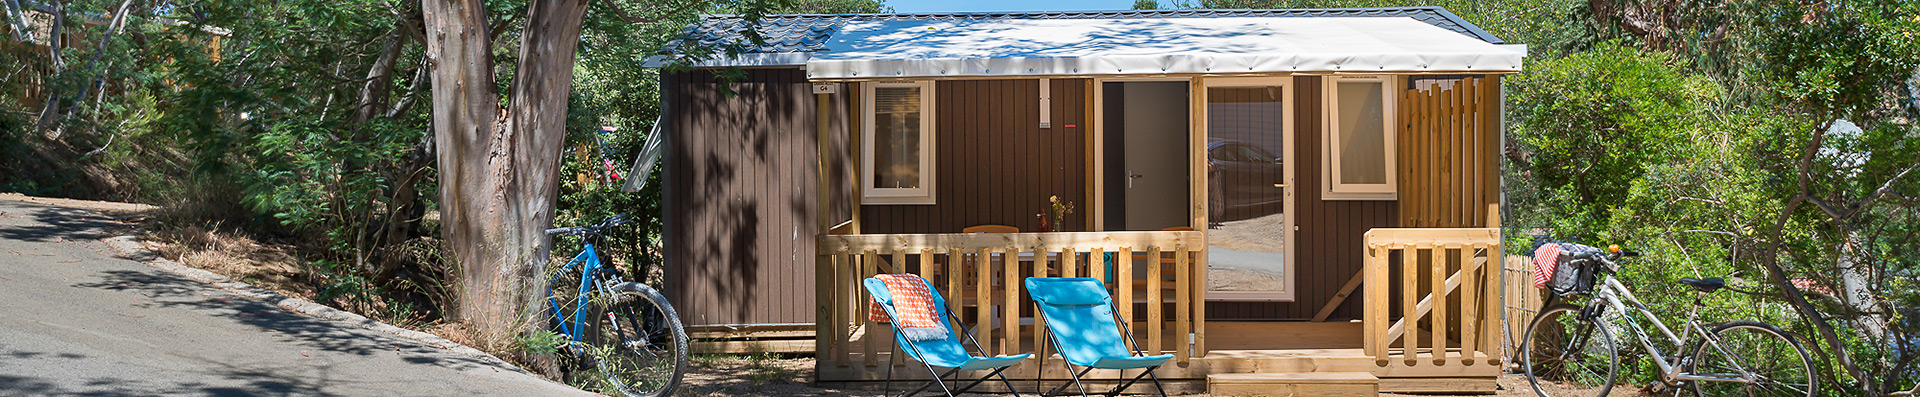 camping-giens-a-hyeres-mobile-home-grand-alize